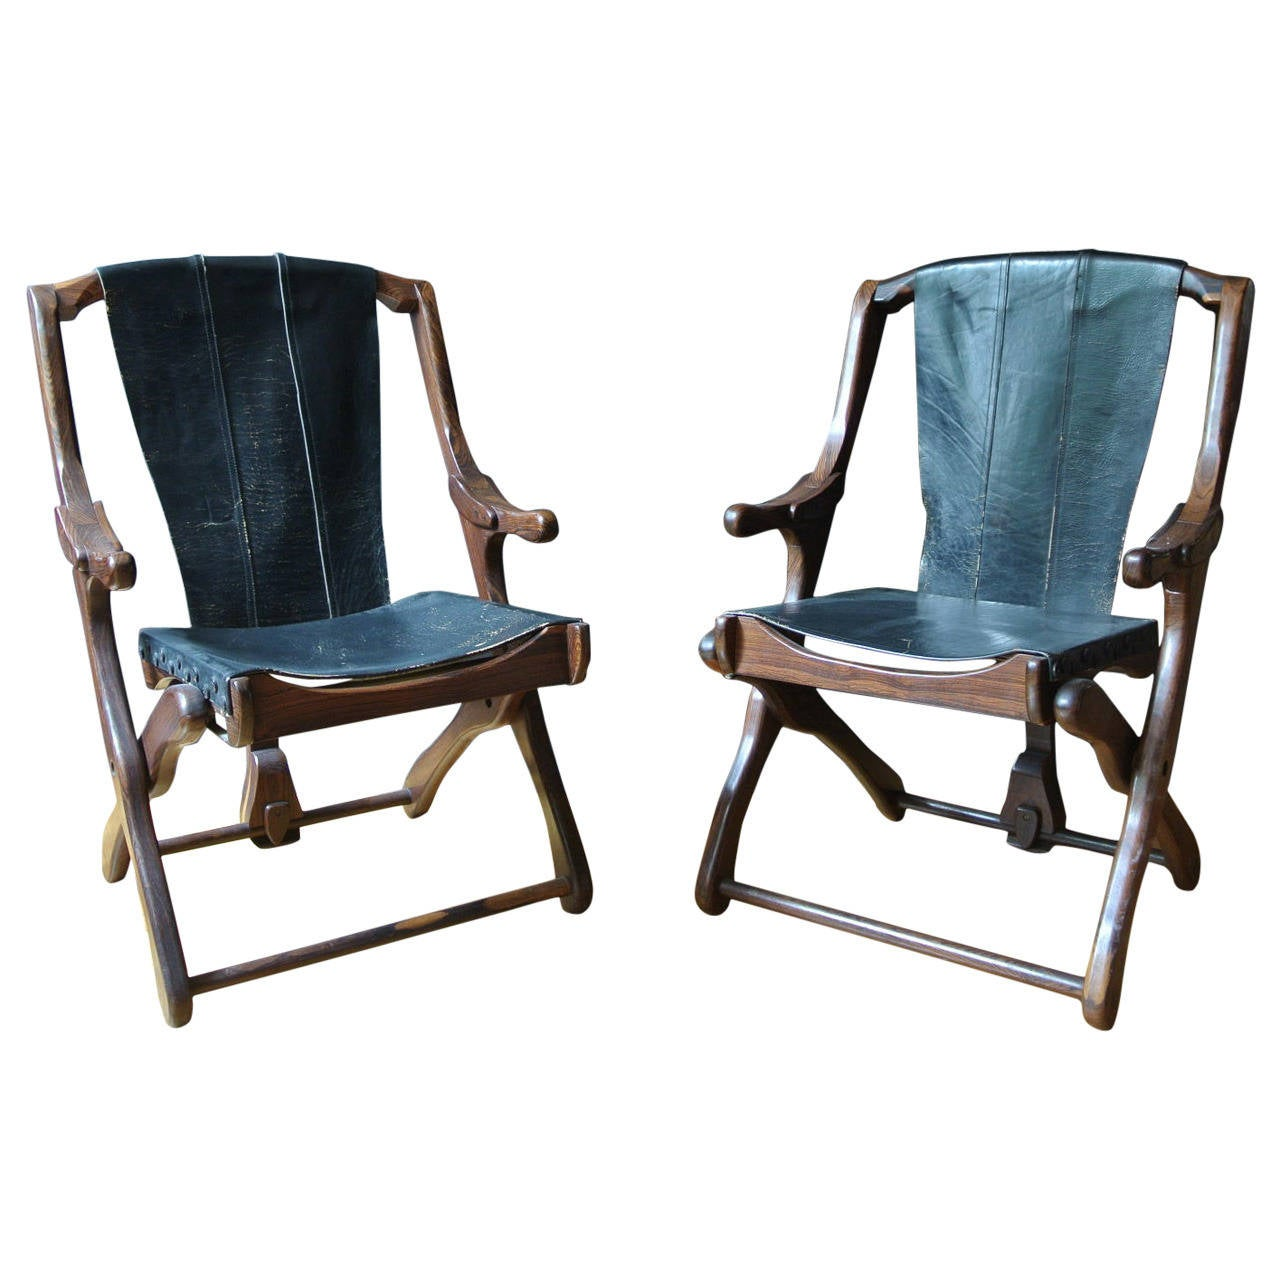 sling folding chairs stair for the elderly pair of don shoemaker chair at 1stdibs